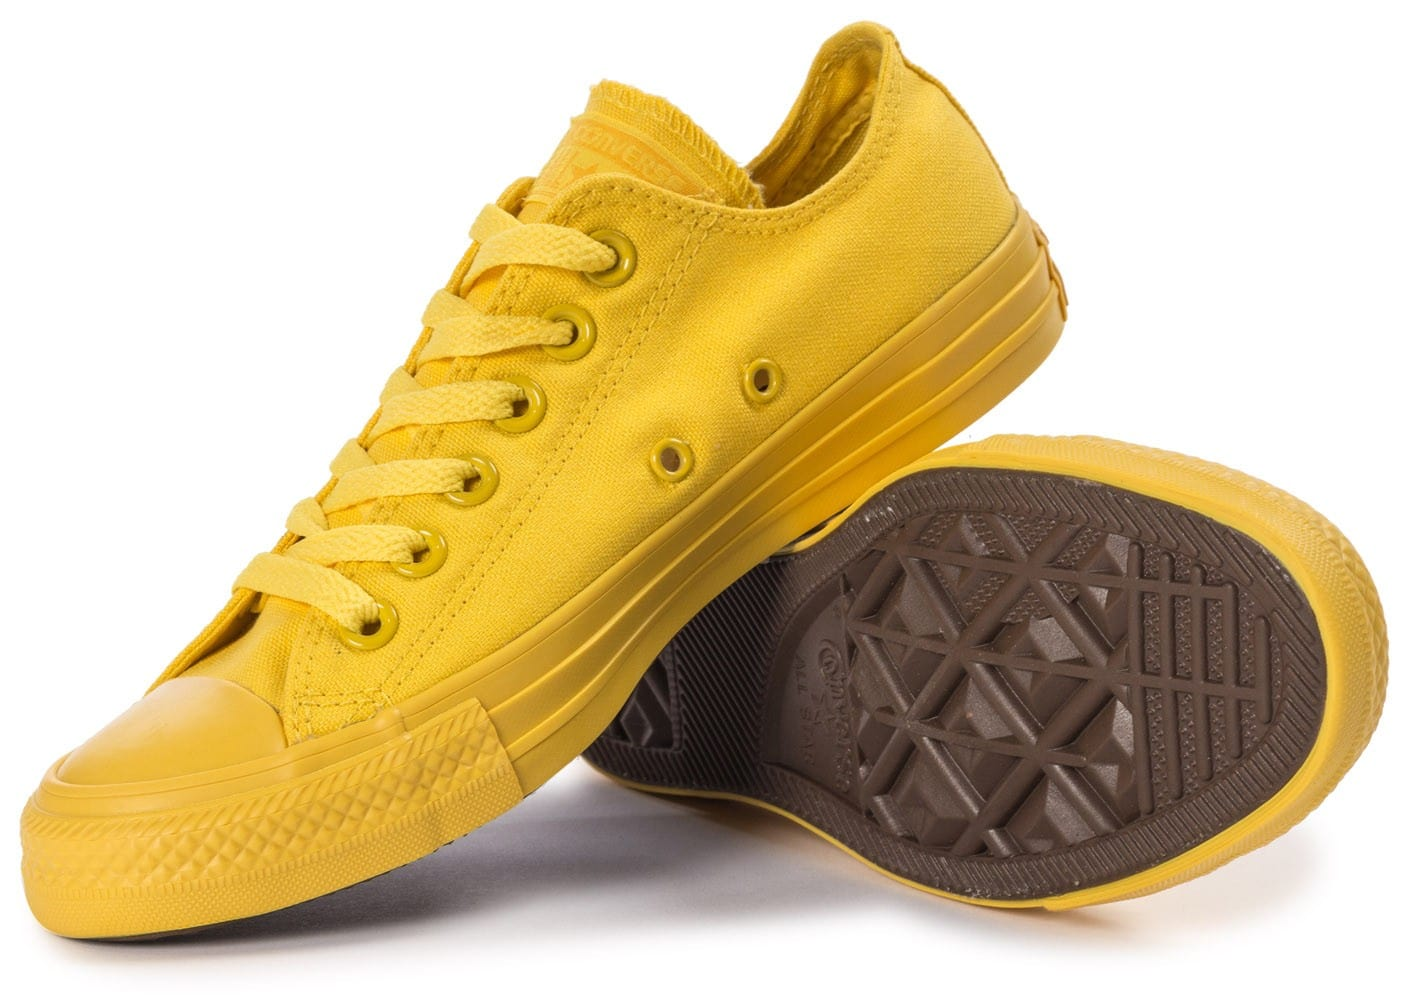 4a2a17f8382 ... promo code for chaussures converse chuck taylor all star mono ox jaune  vue intérieure cfa41 14334